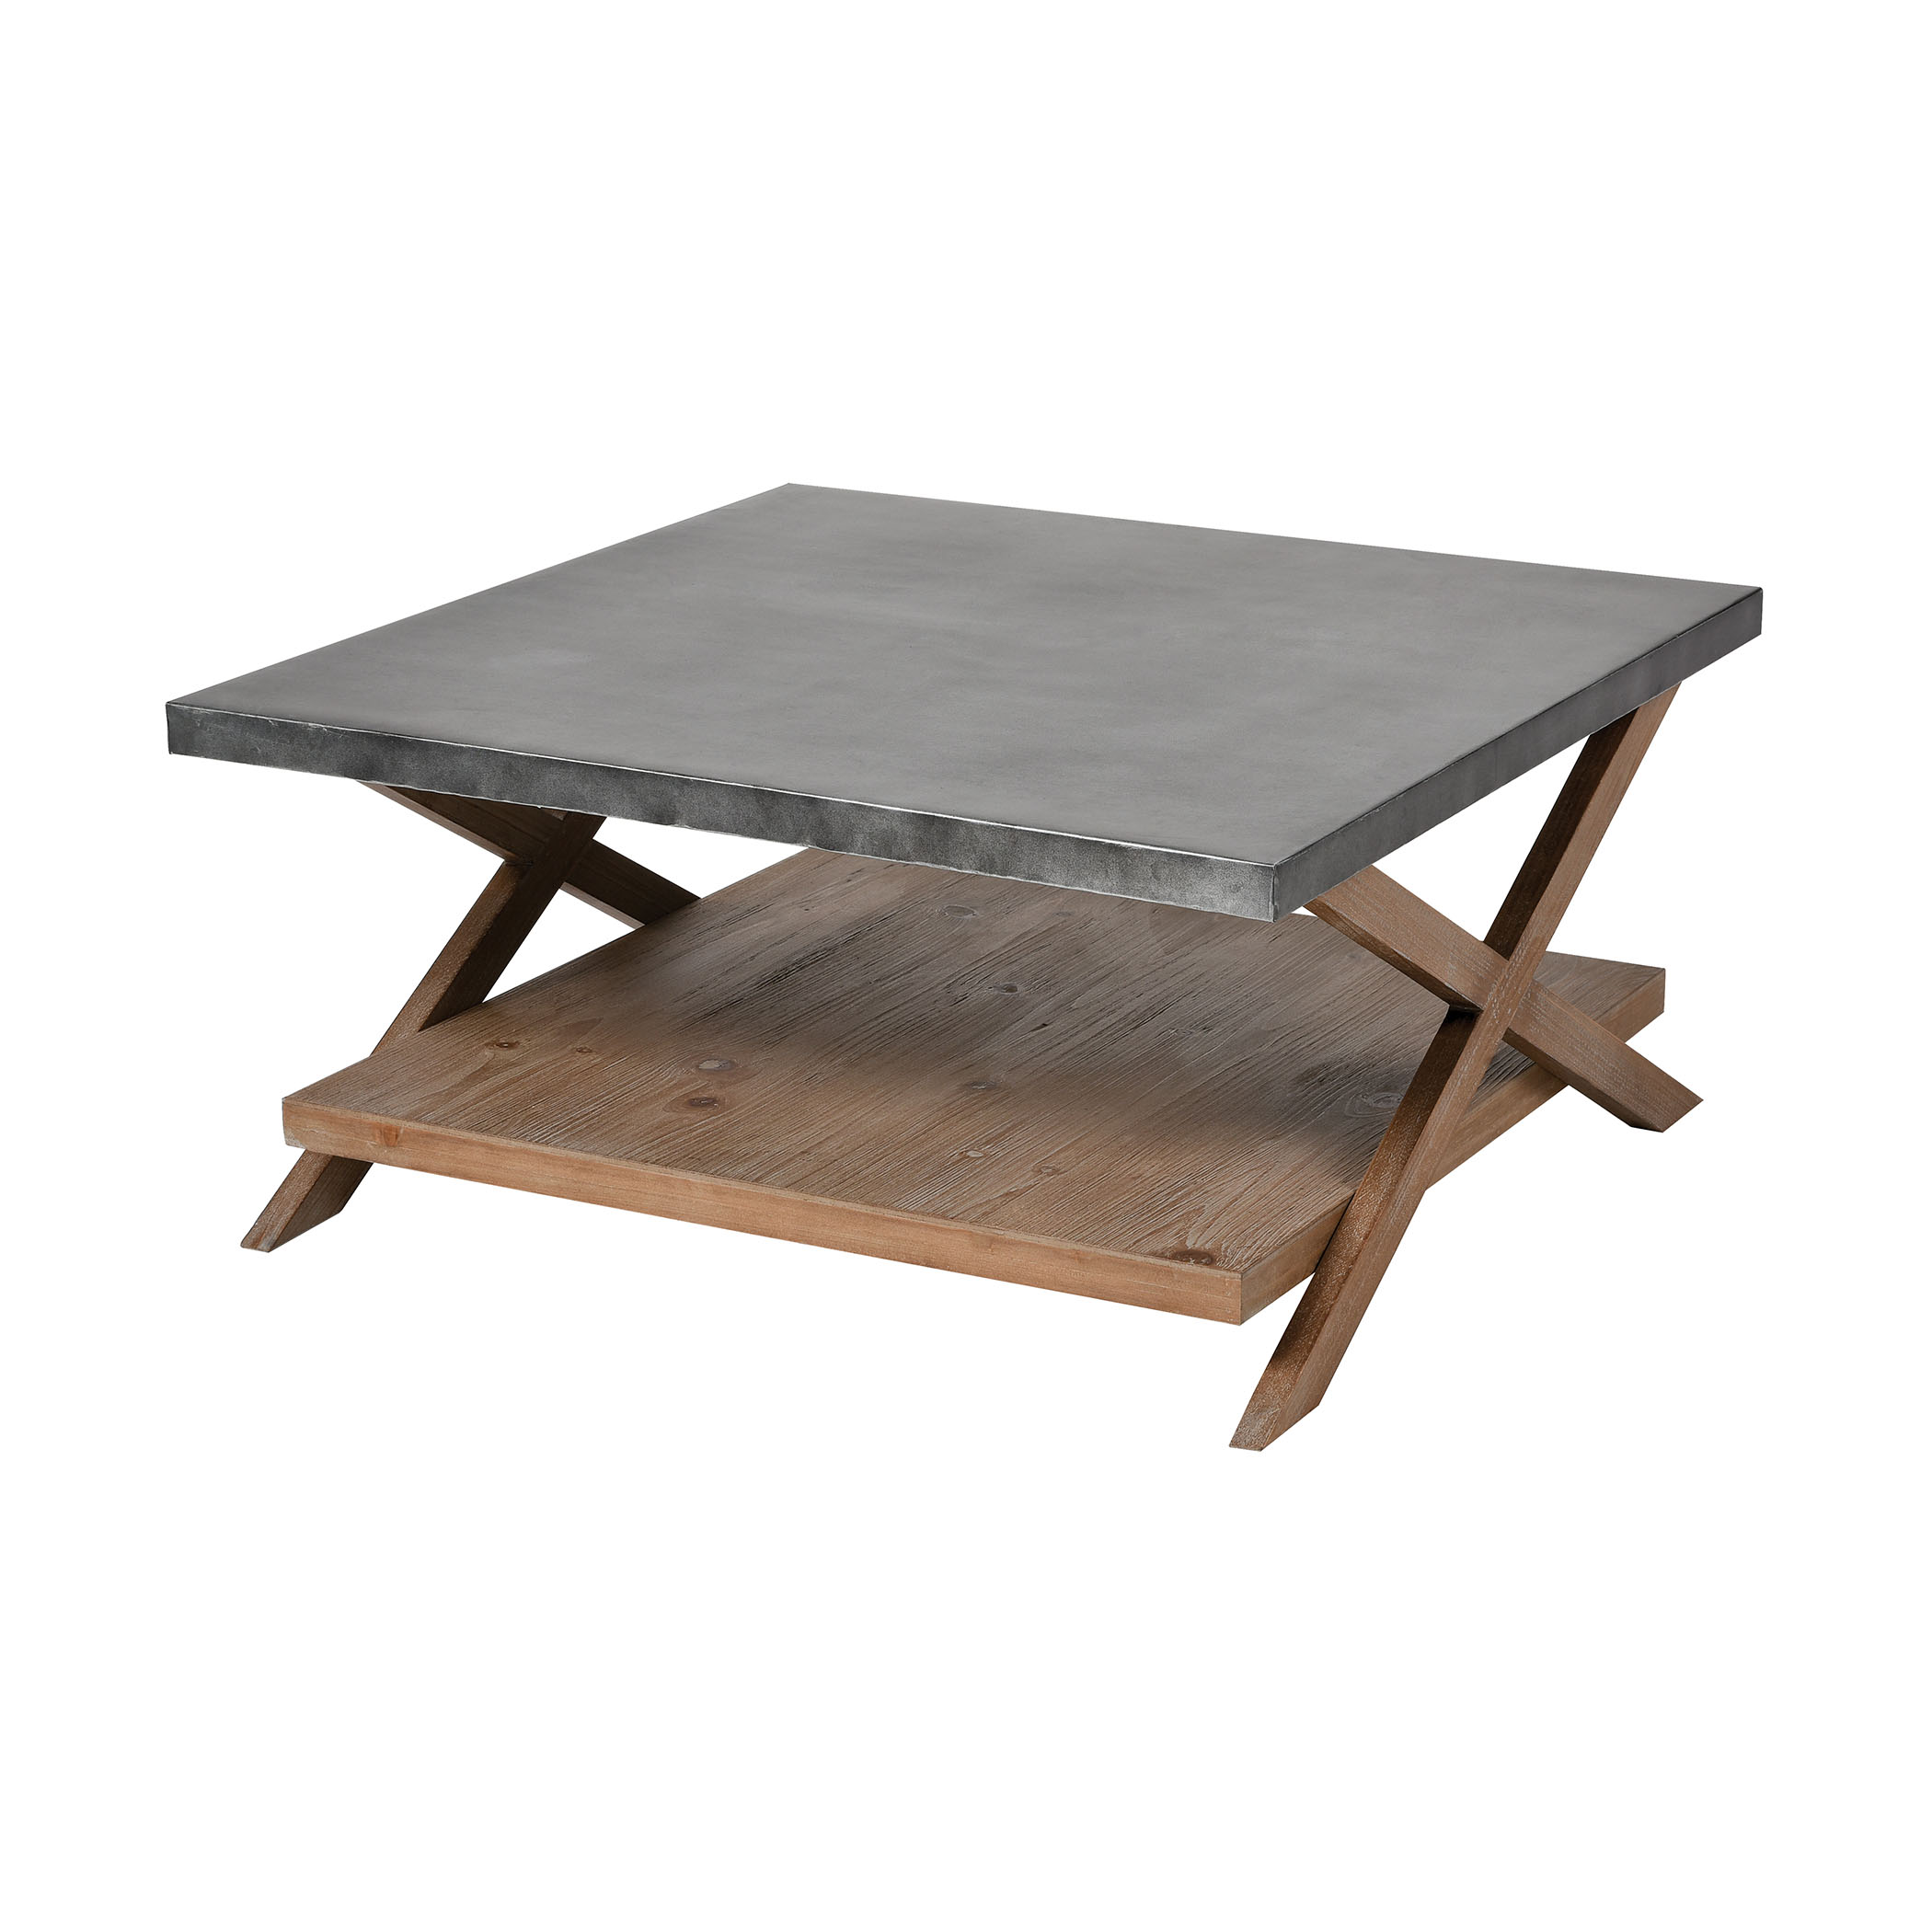 Winterfell Cocktail Table in Natural Wood and Antique Galvanized Steel | Elk Home